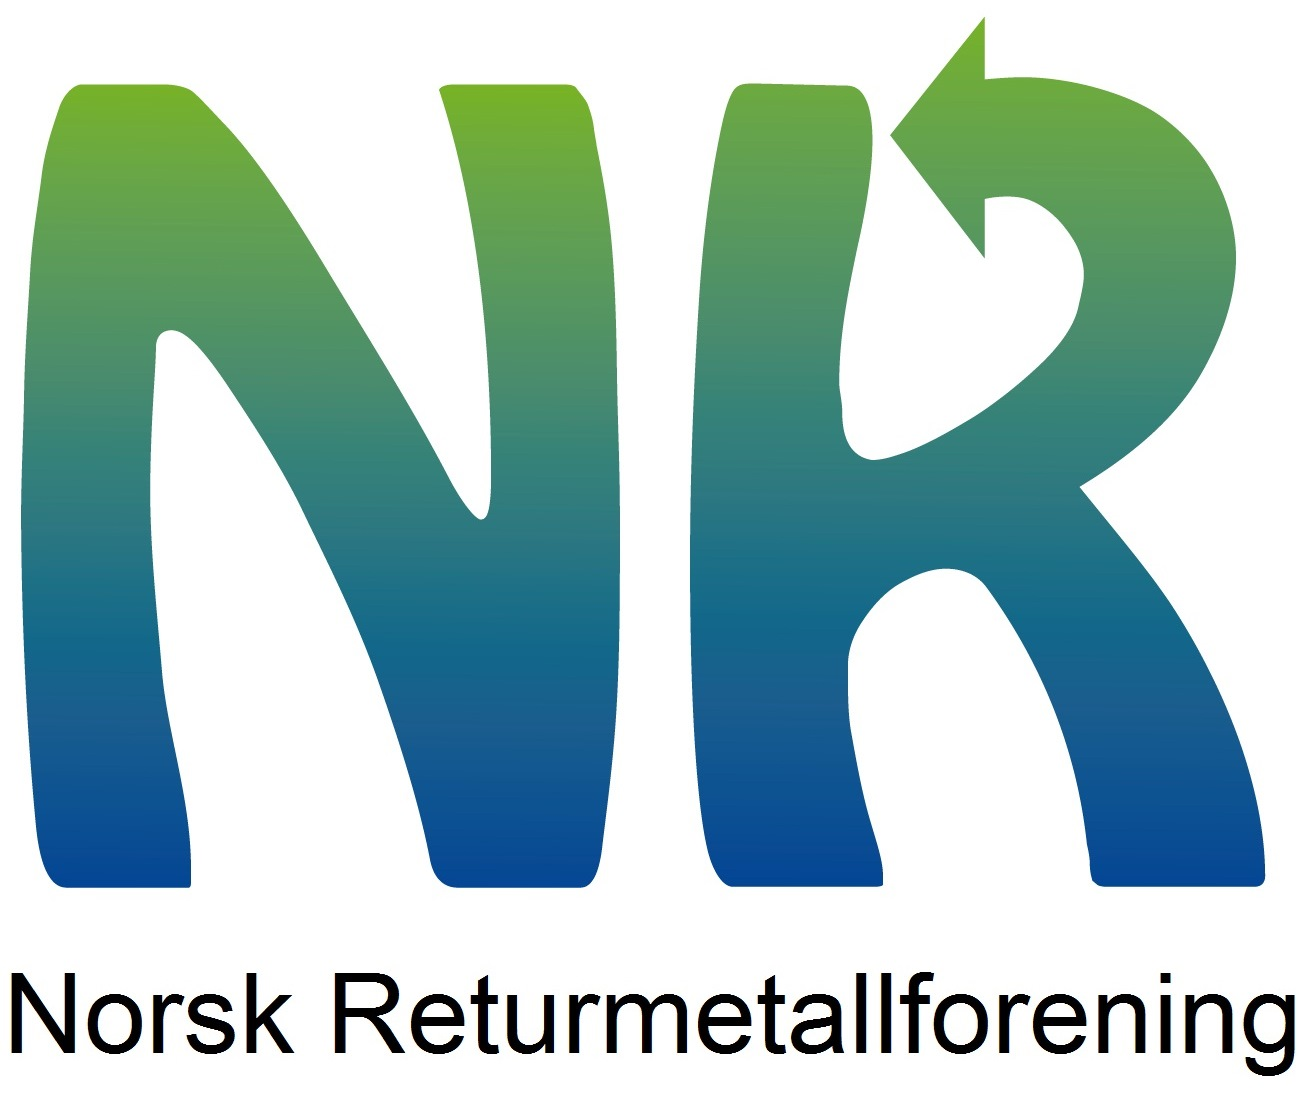 norsk Norwegian (norsk) norwegian is a north germanic language with around 5 million speakers in mainly in norway there are also some speakers of norwegian in denmark.